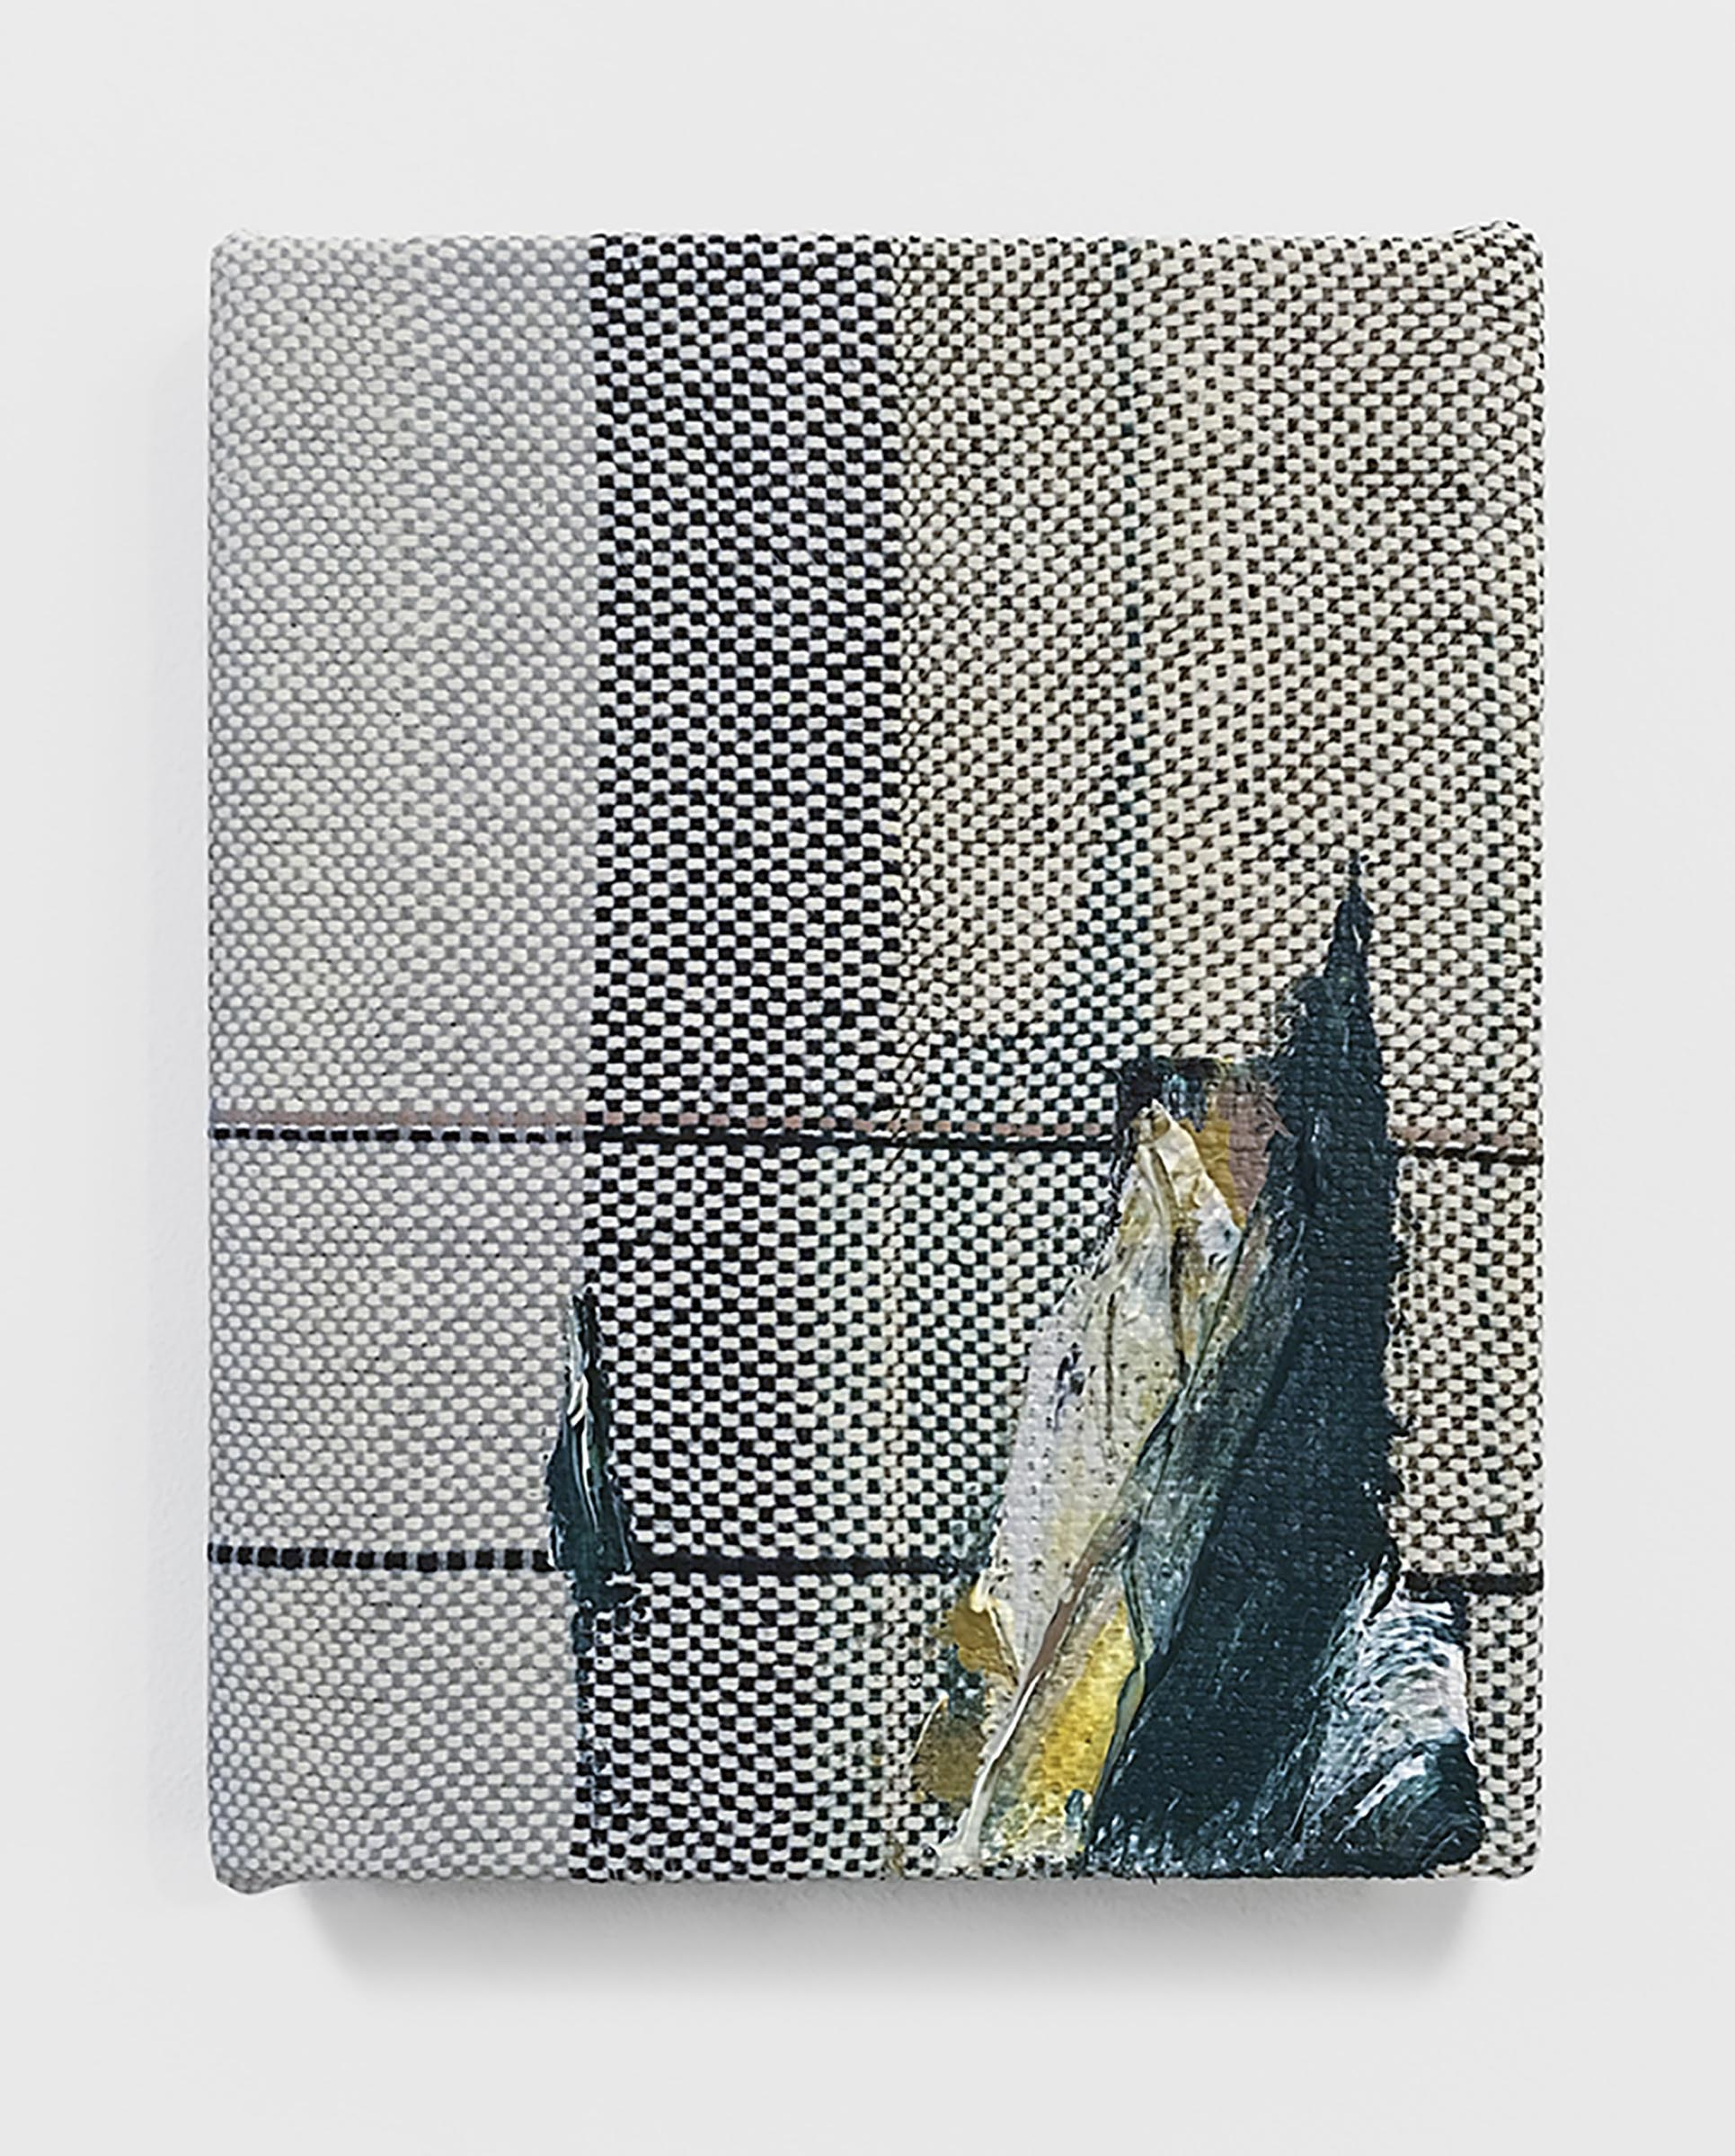 Mary Raap, Shadowboxer, Handwoven cotton and silk, acrylic over canvas, 10 x 8 x 1 in, 2018